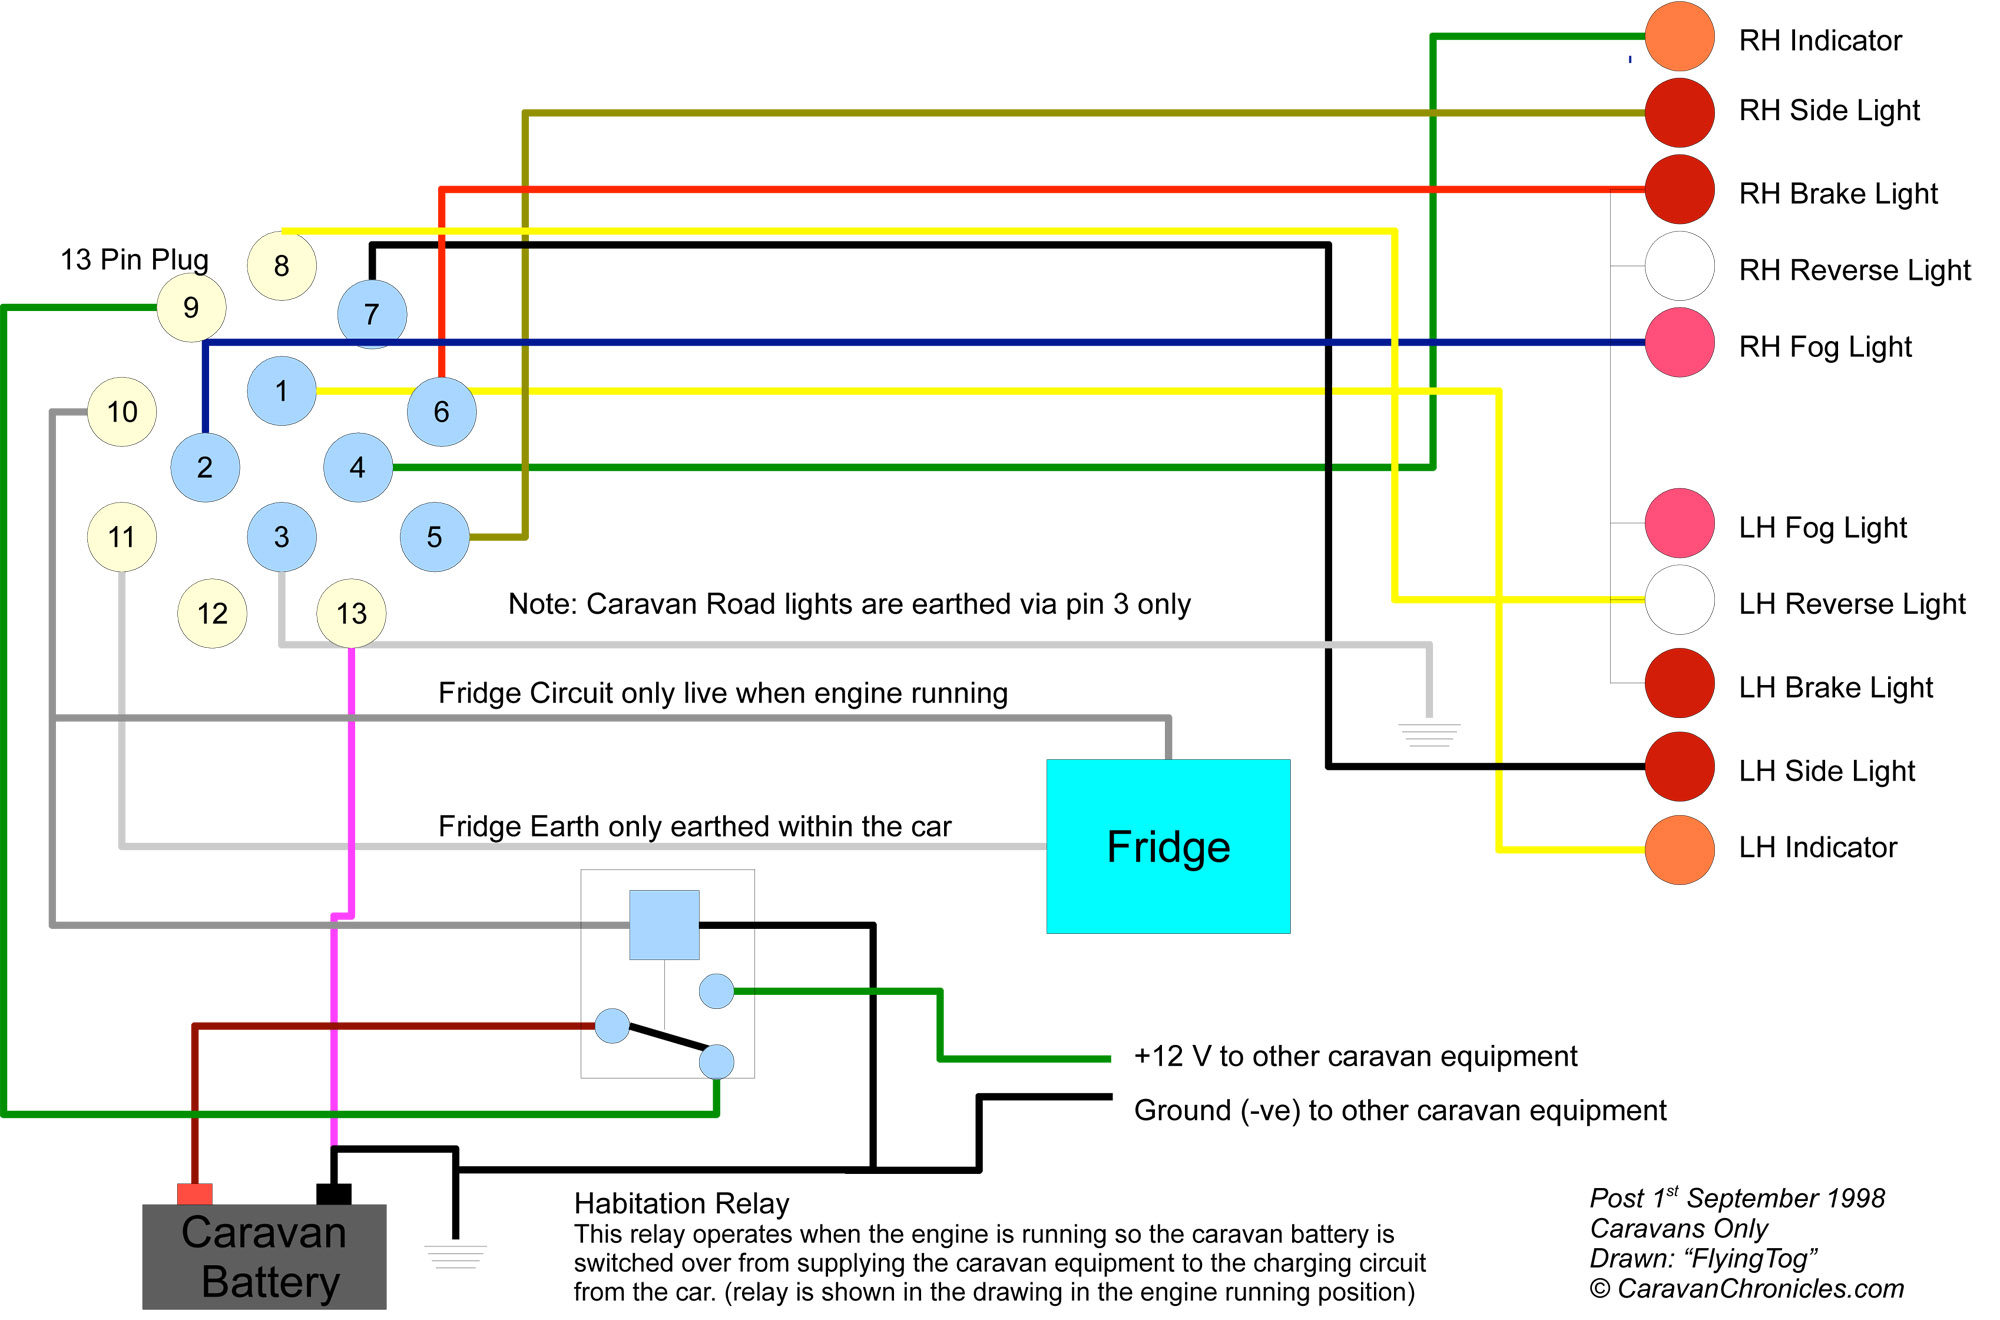 caravan wiring 13 pin understanding caravan and tow car electrics caravan chronicles 13 amp socket wiring diagram at fashall.co